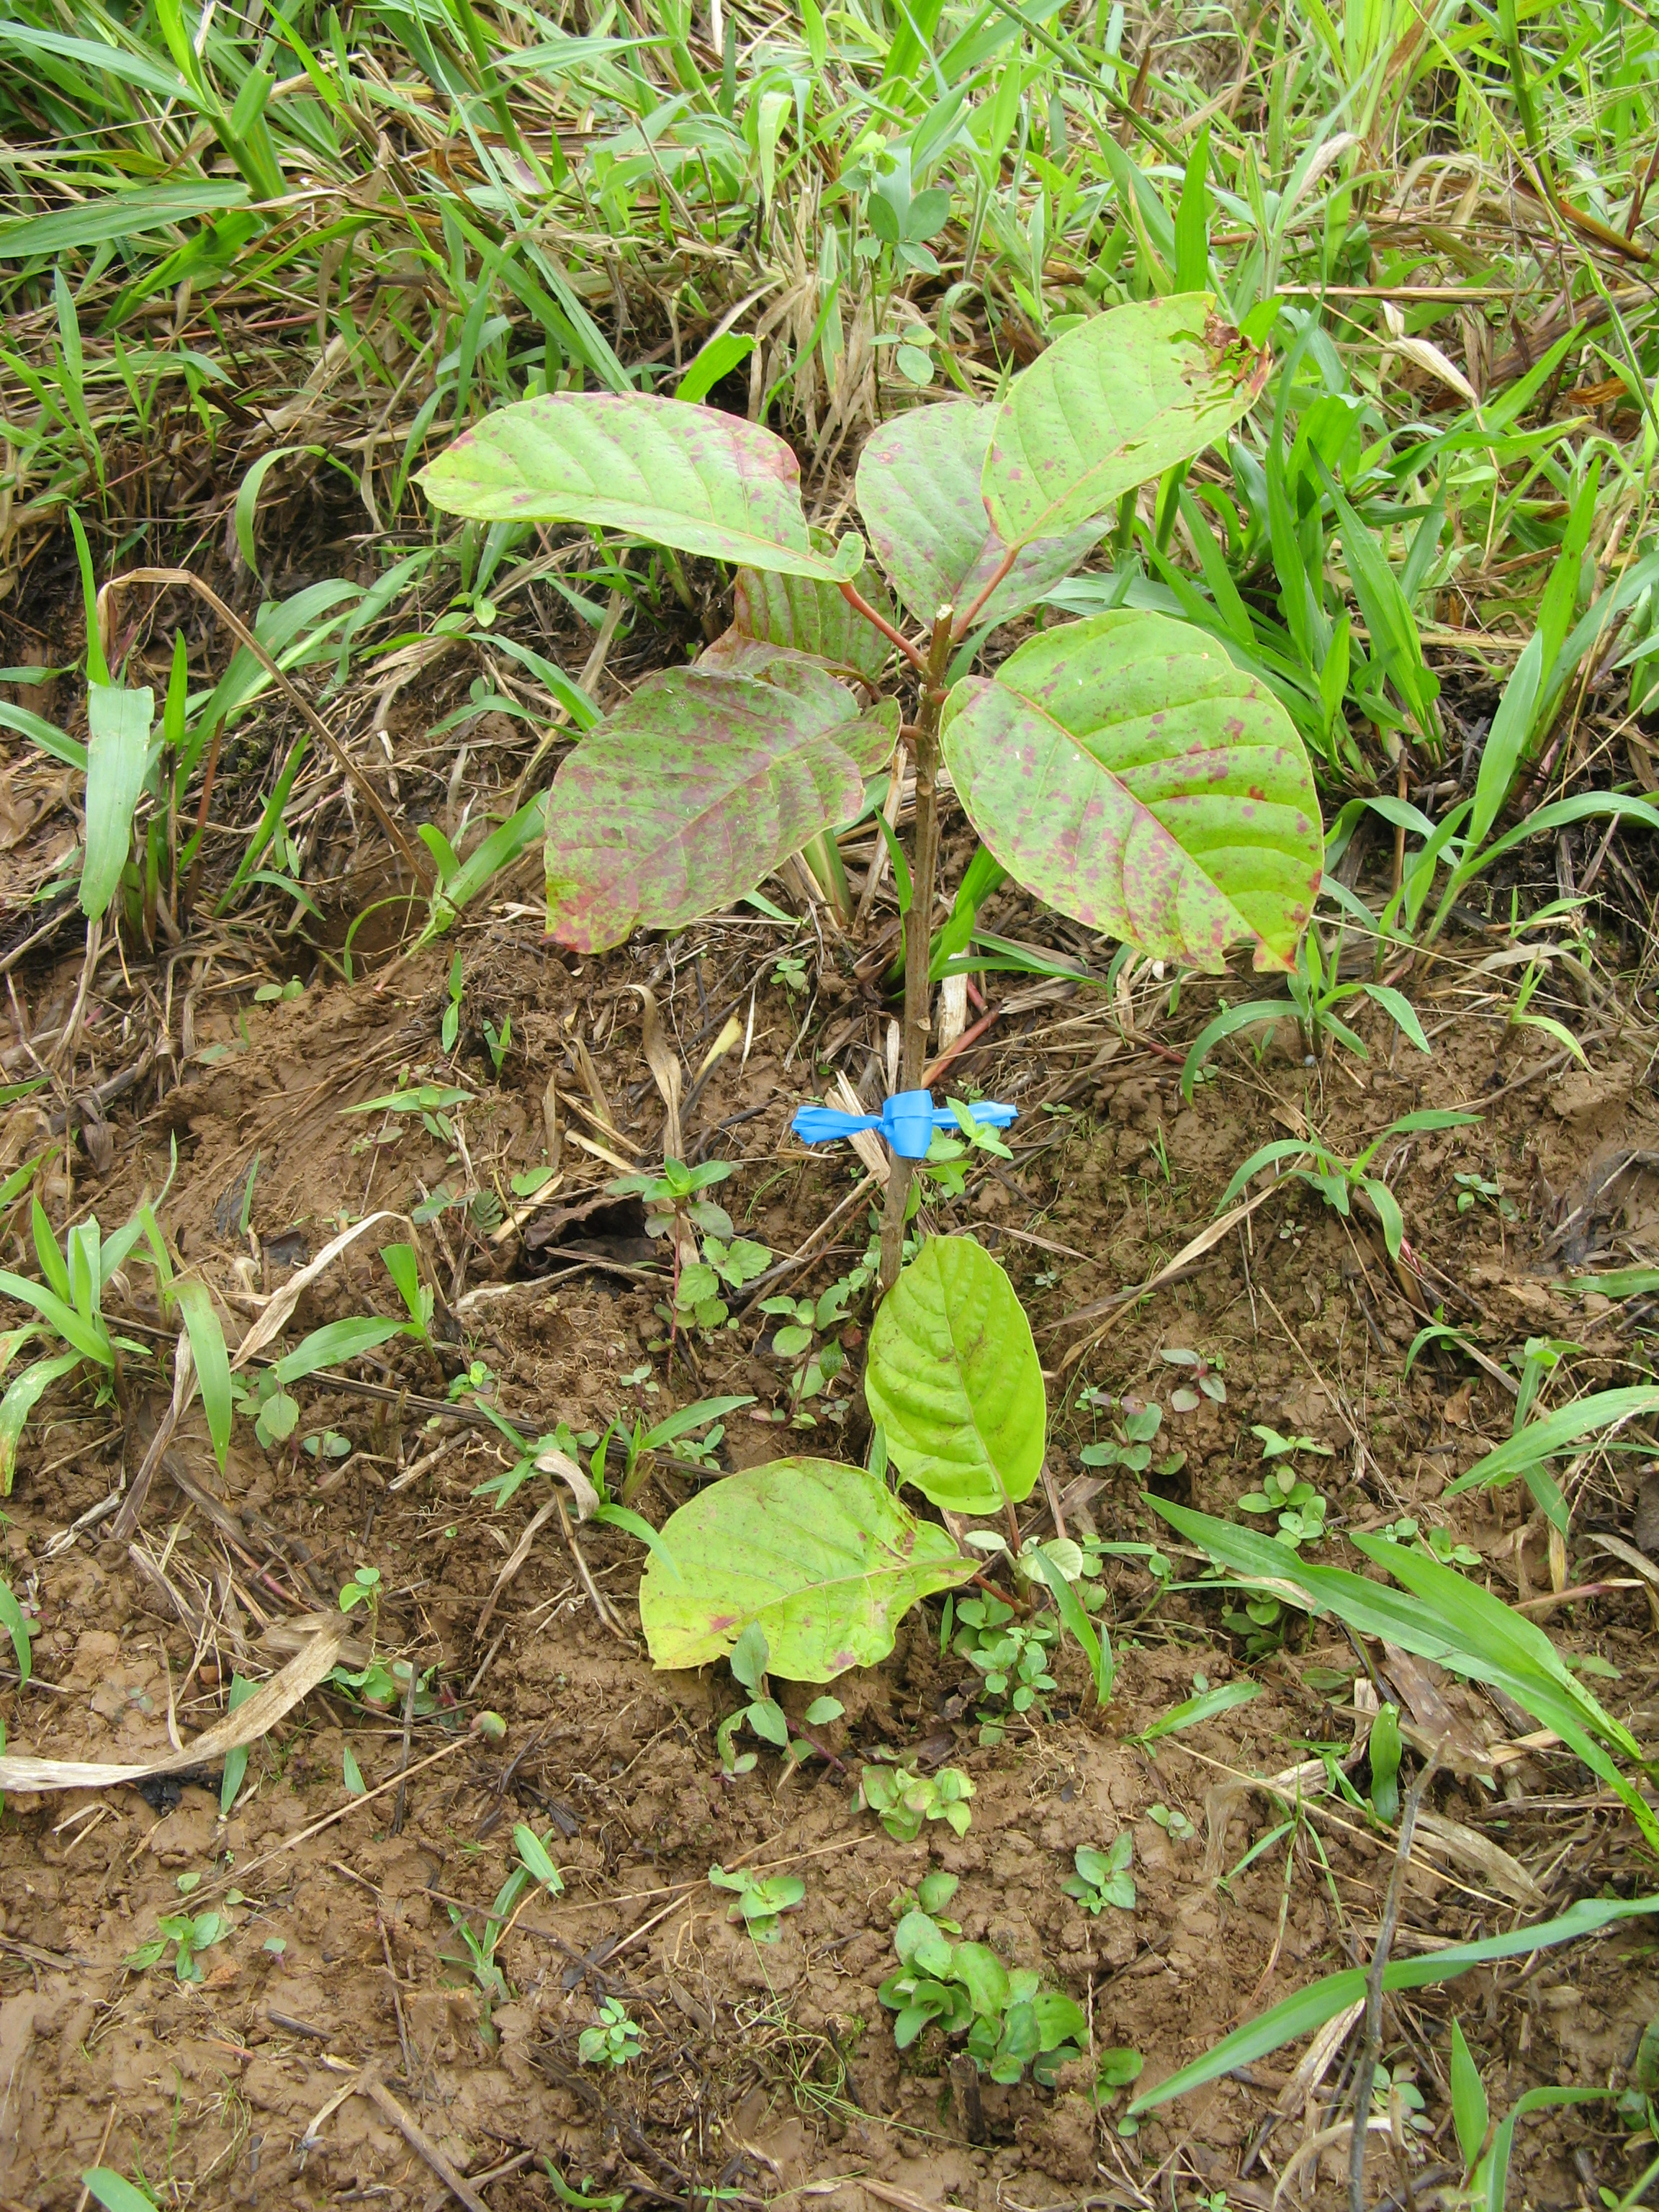 Pilon seedling in full sun. In contrast, when planted in shade, leaves are dark green and have few red spots.